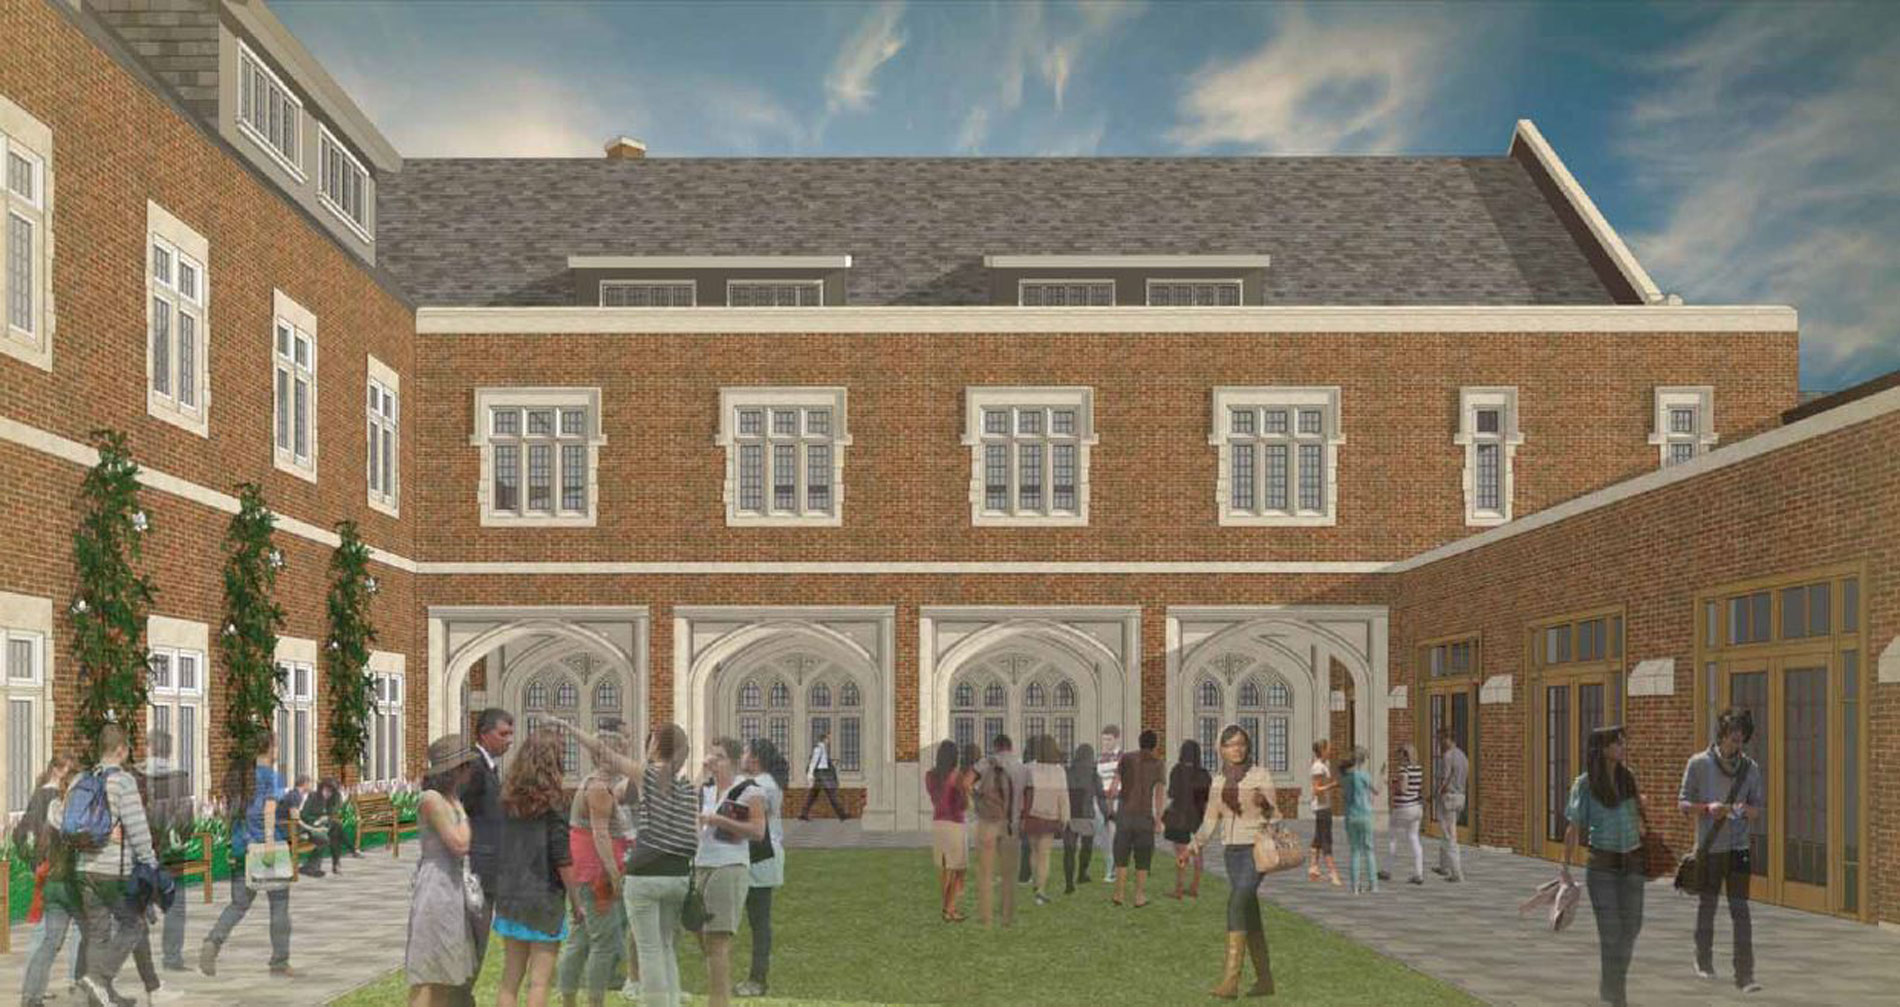 Rendering of the courtyard showing benches and espaliered Magnolias to the left.